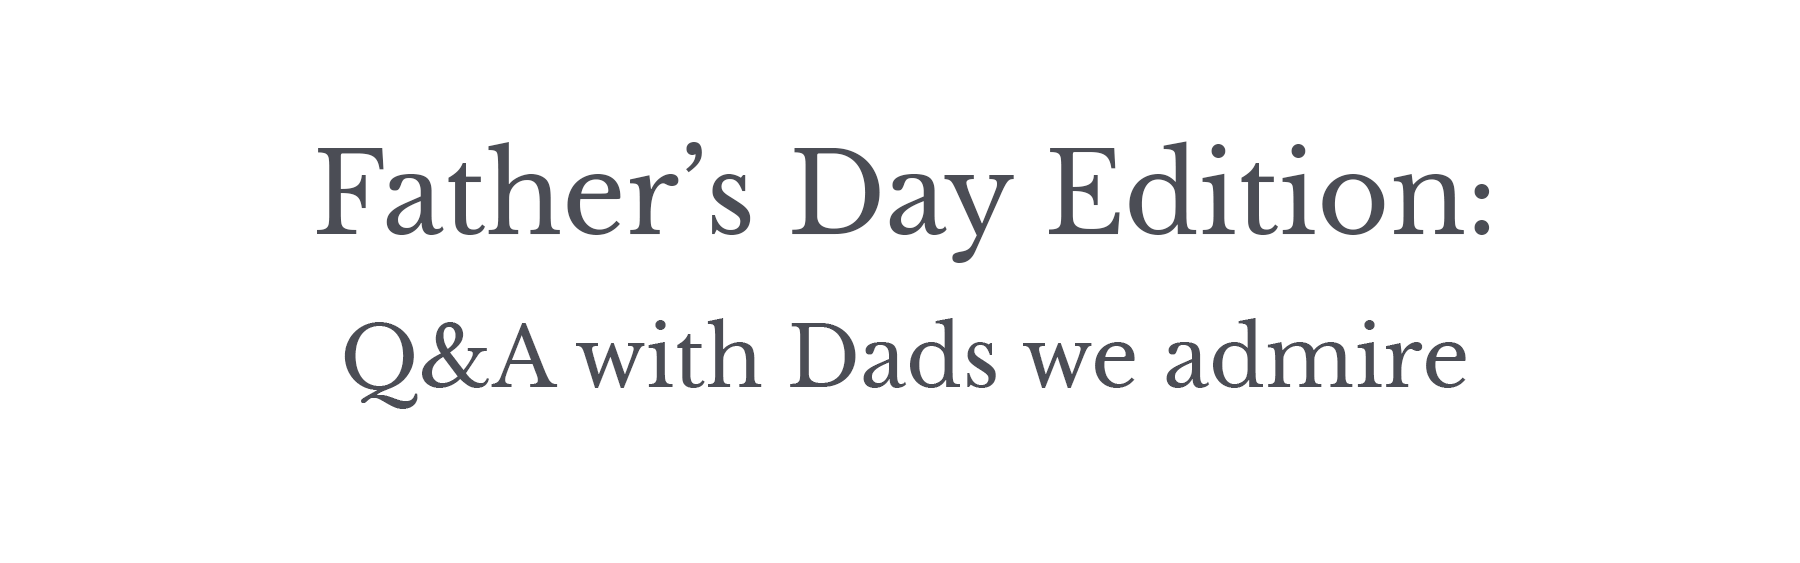 Father's Day Edition: Q&A with Dads we Admire